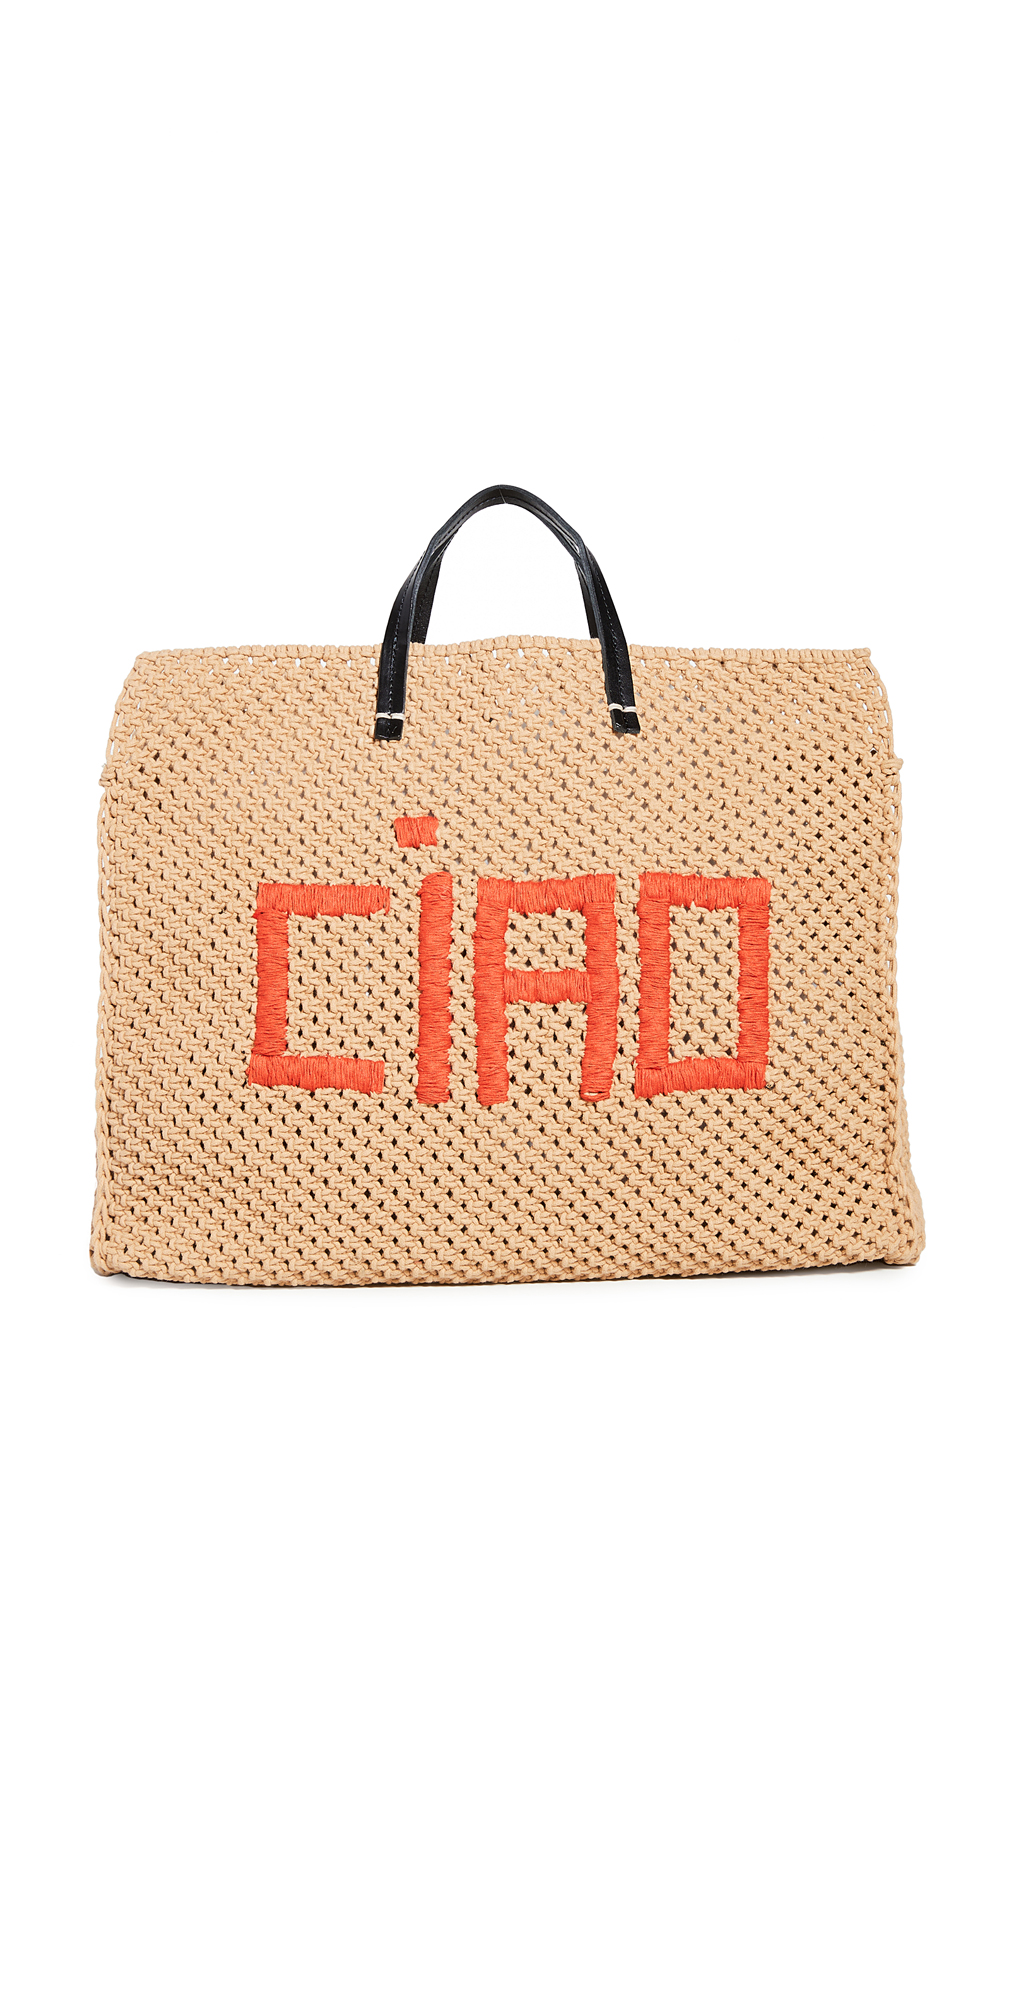 Clare V. Summer Simple Tote